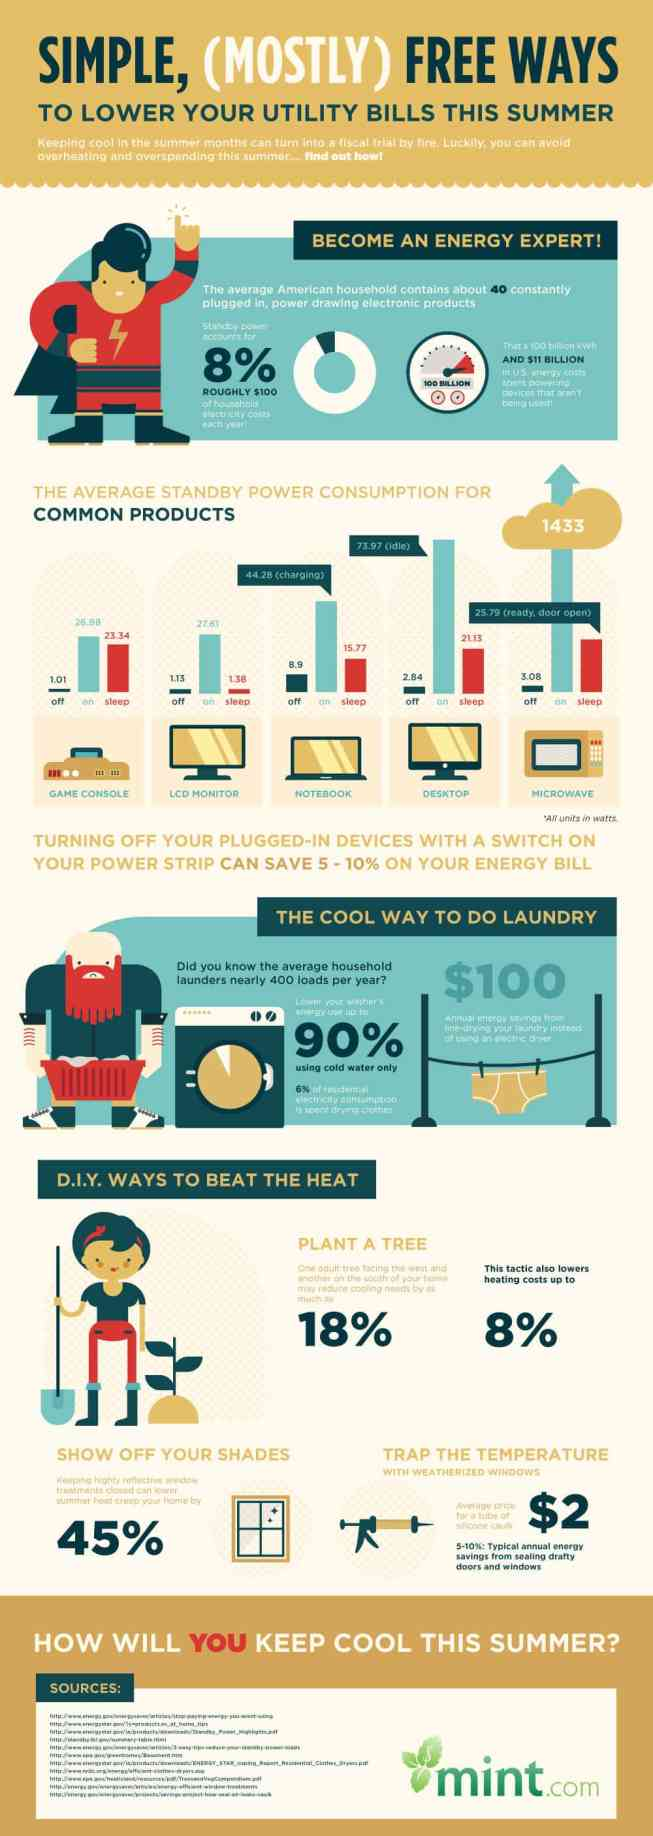 Natural Ways To Lower Ac